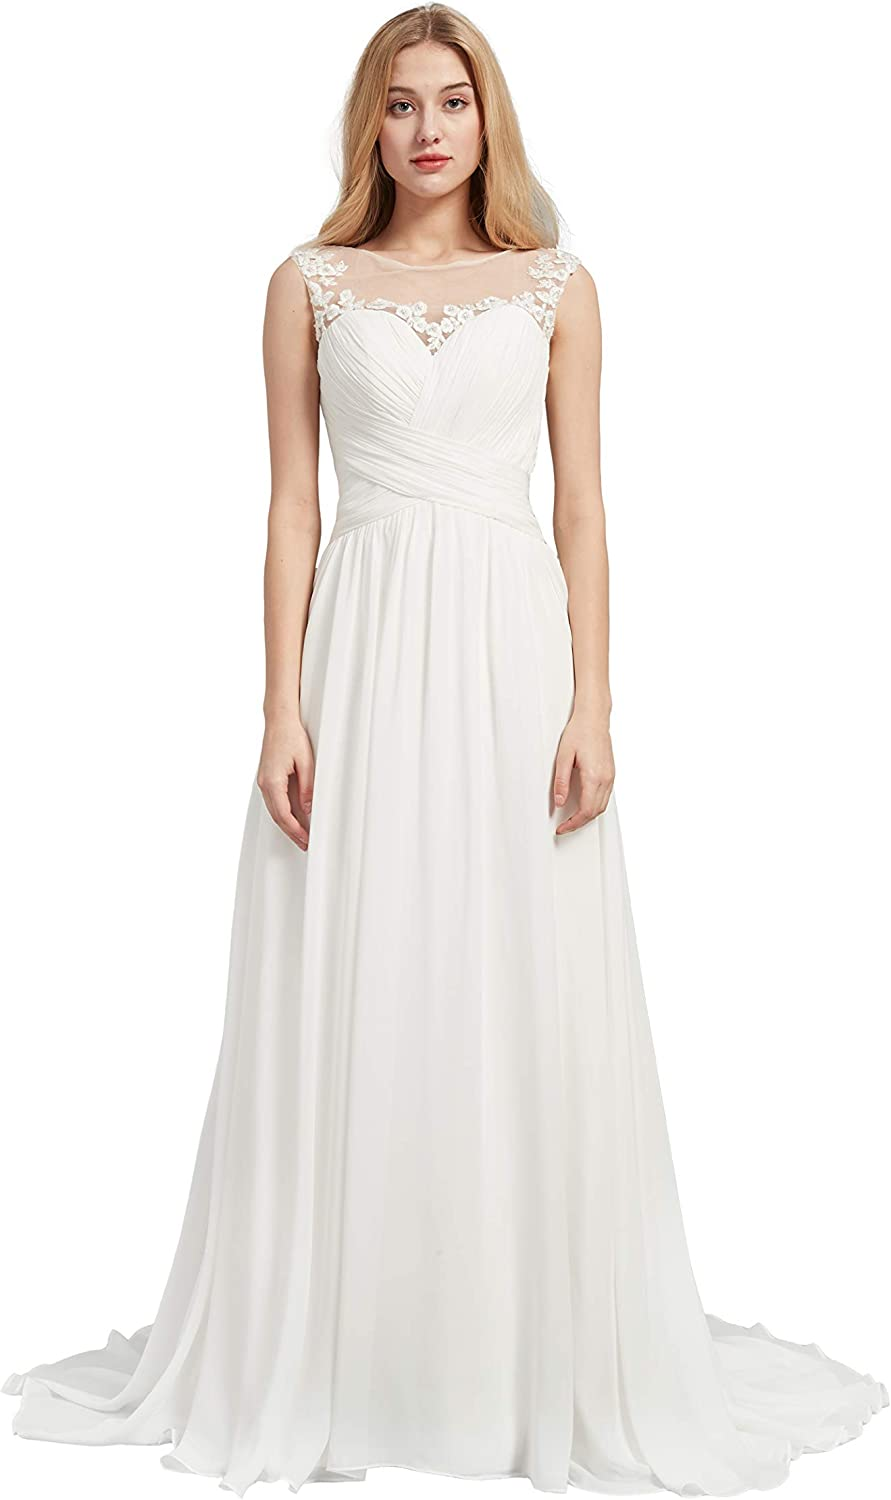 Special Brida Lowest price challenge Sleeveless Chiffon Sweetheart with Wedding Sales results No. 1 Dress B